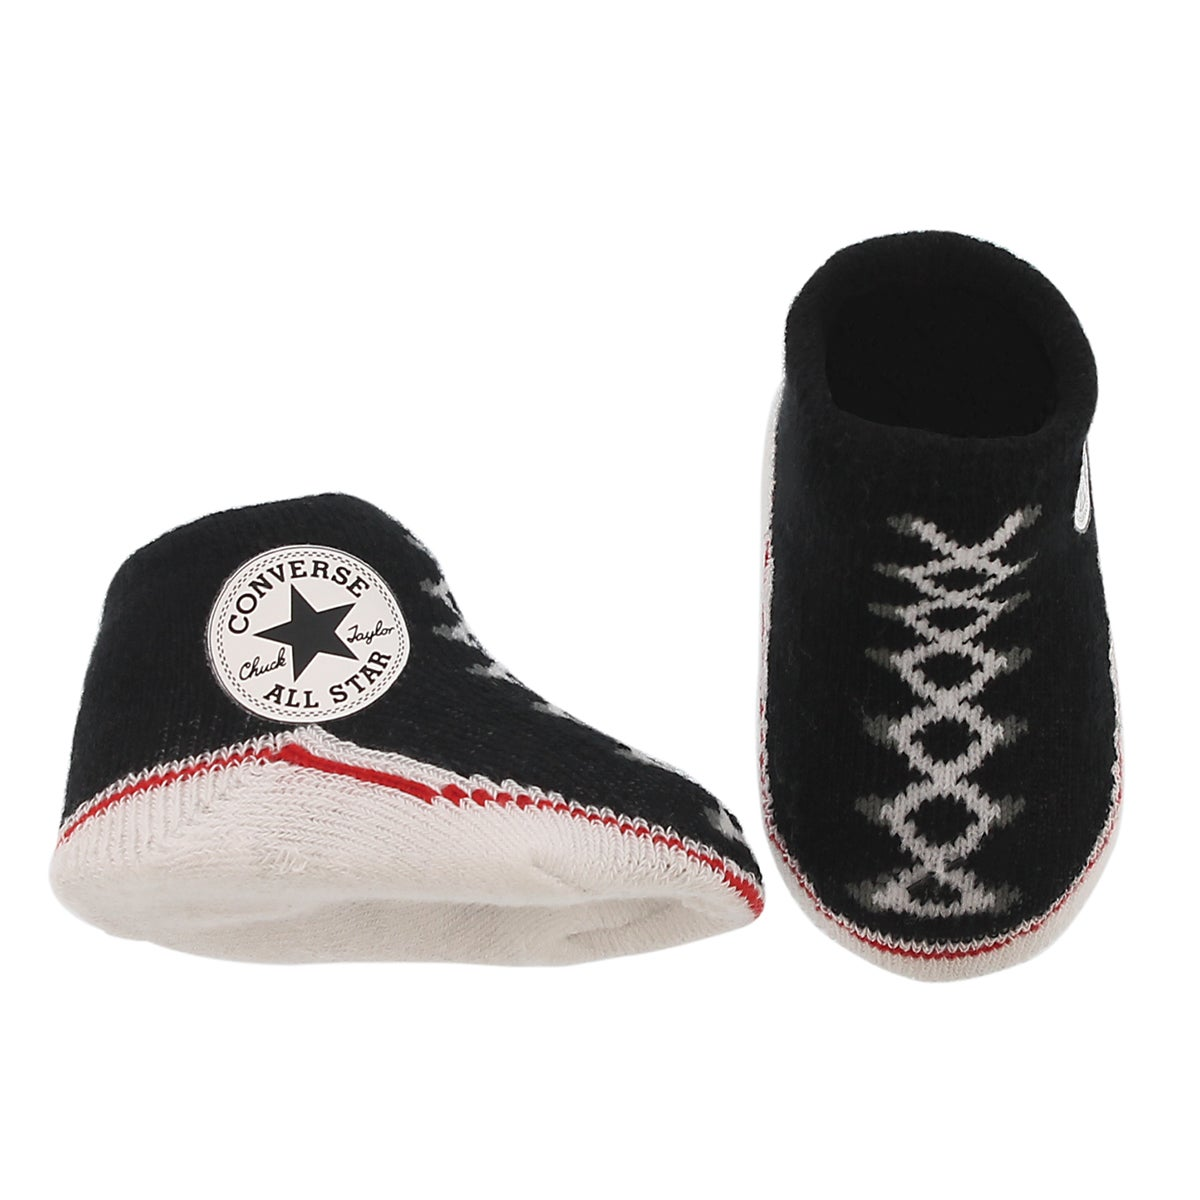 Infs Converse black hat and bootie combo